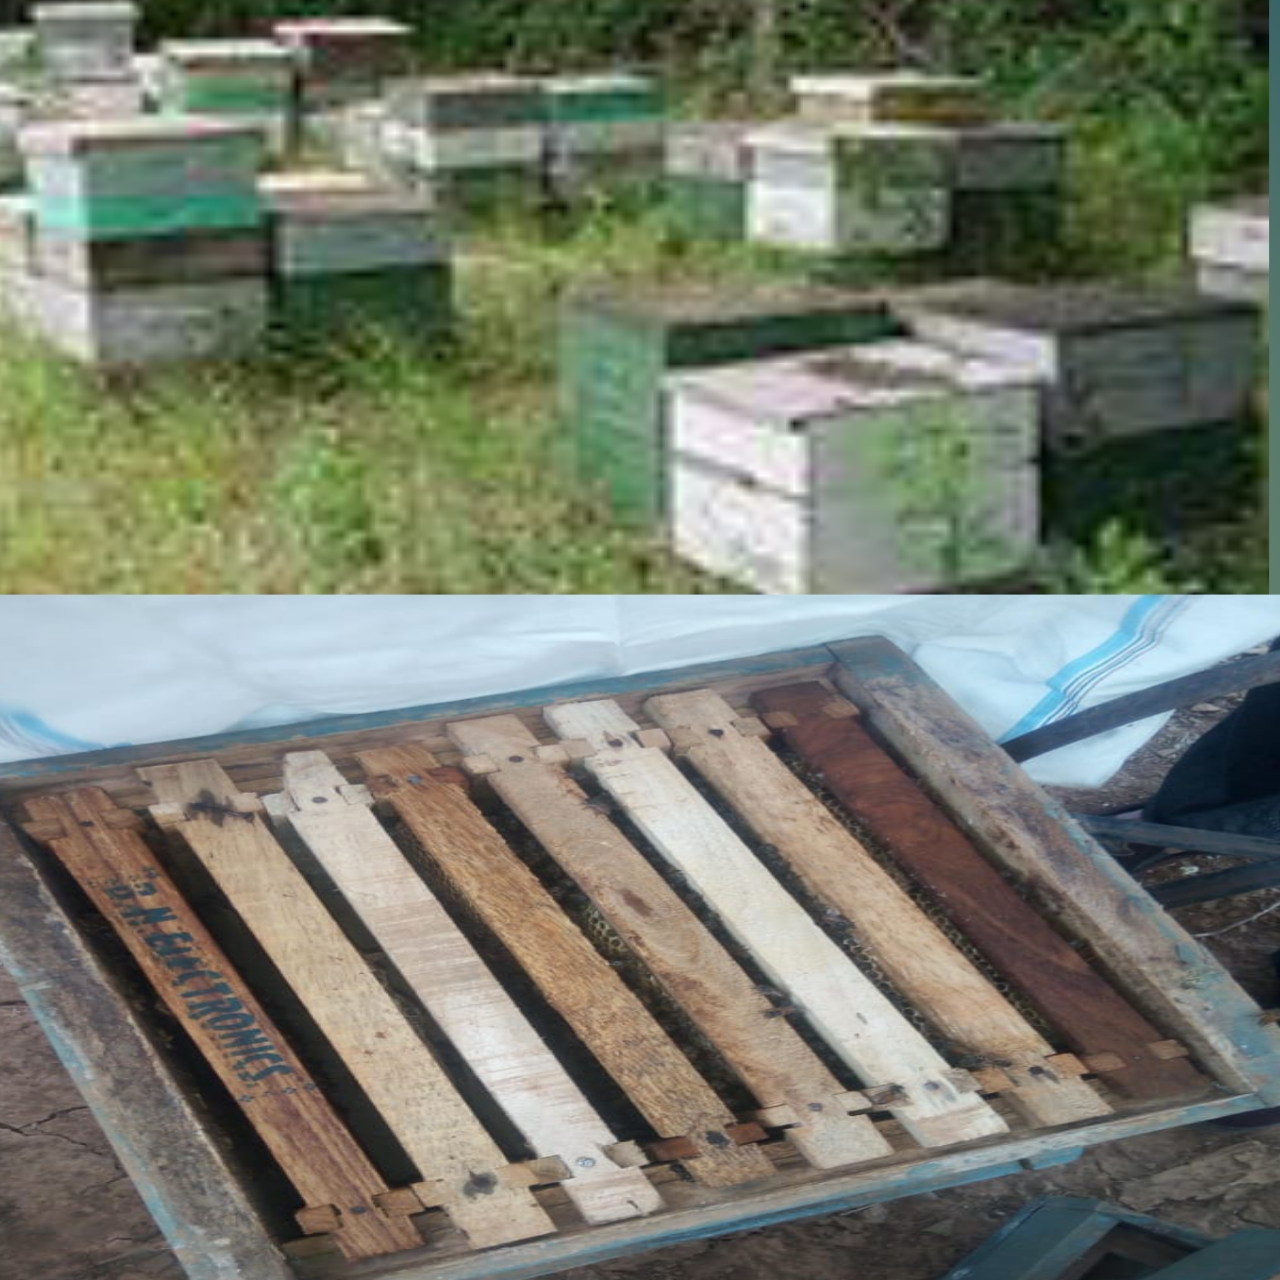 [Honey bee] Apiary setting in apiculture